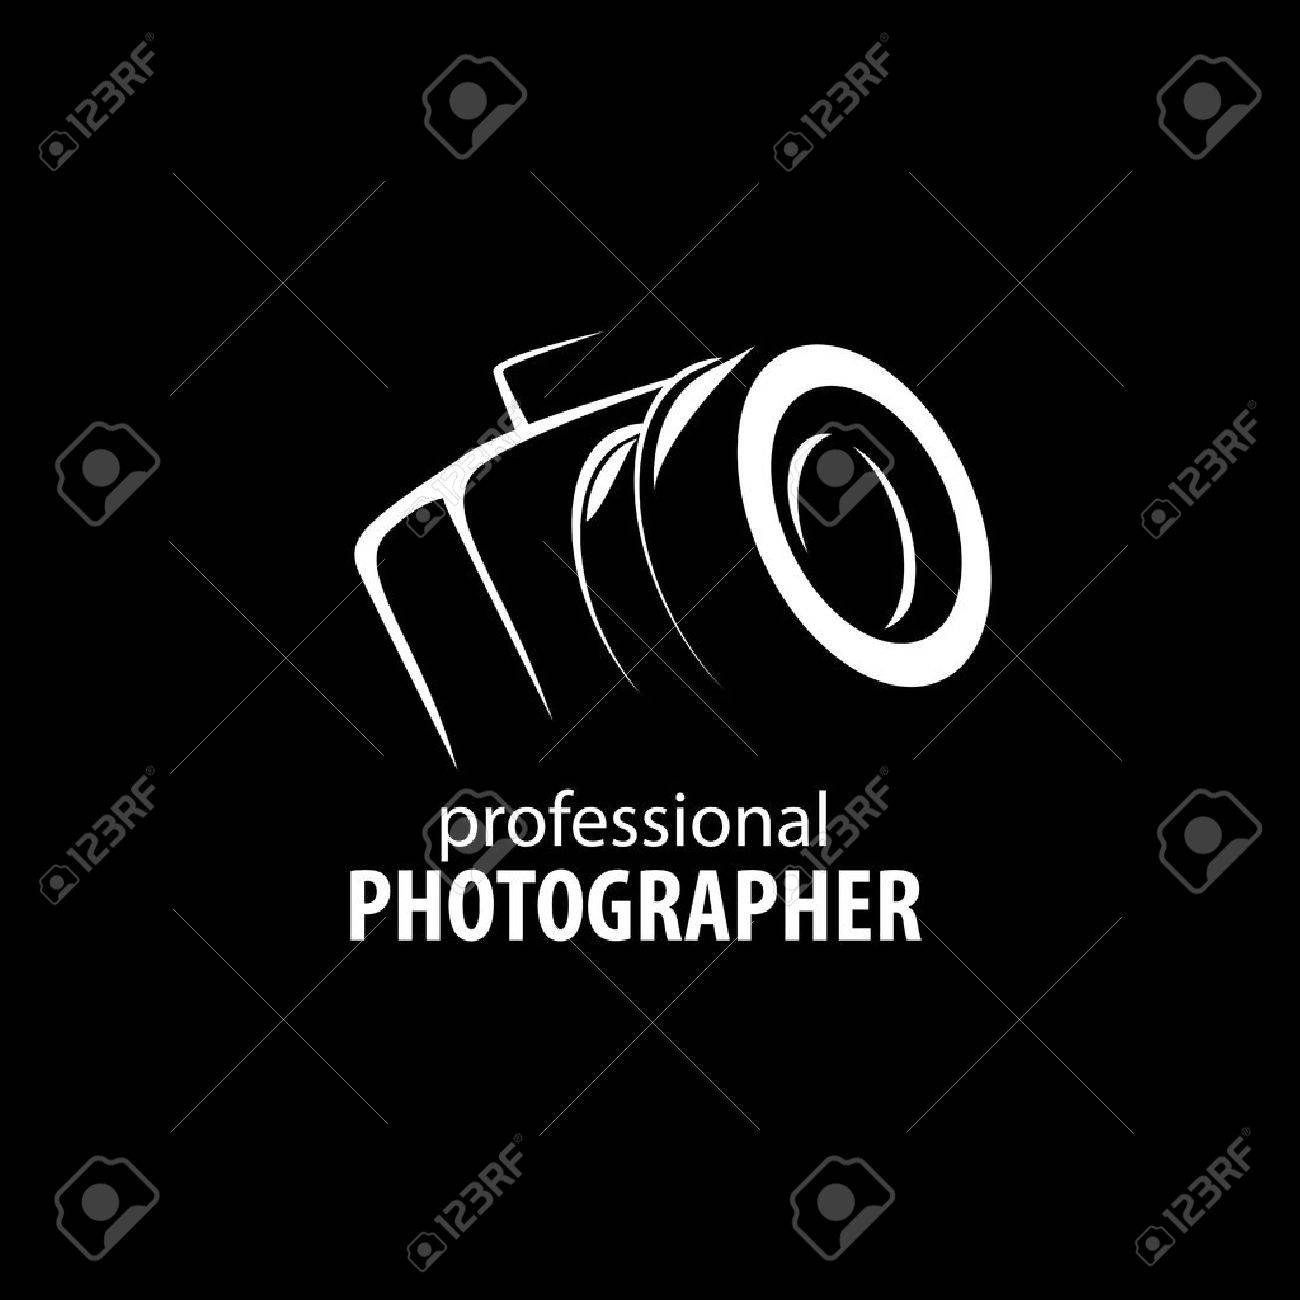 hight resolution of vector logo template for a photographer or studio illustration